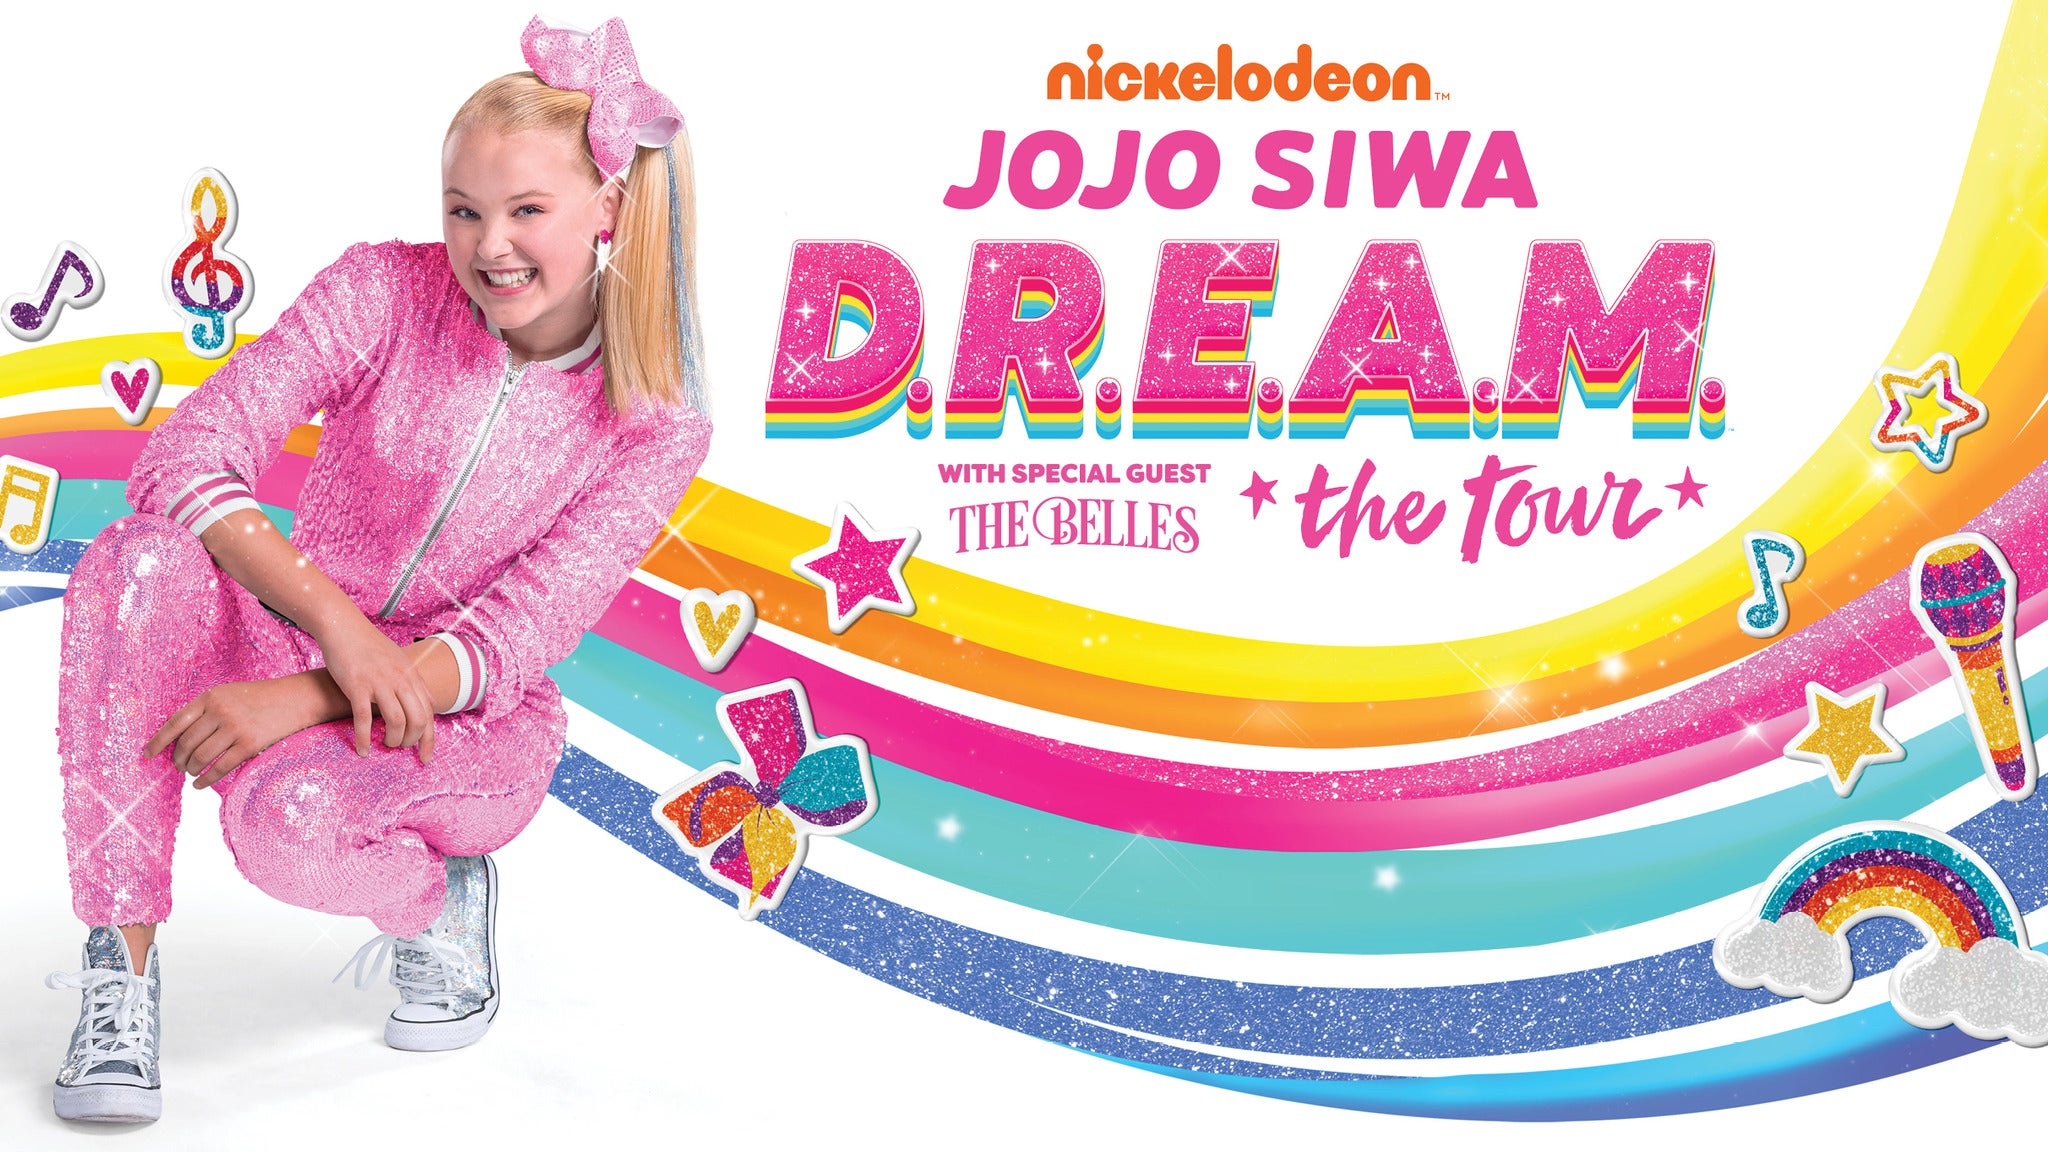 Nickelodeon's JoJo Siwa D.R.E.A.M. The Tour at BOK Center